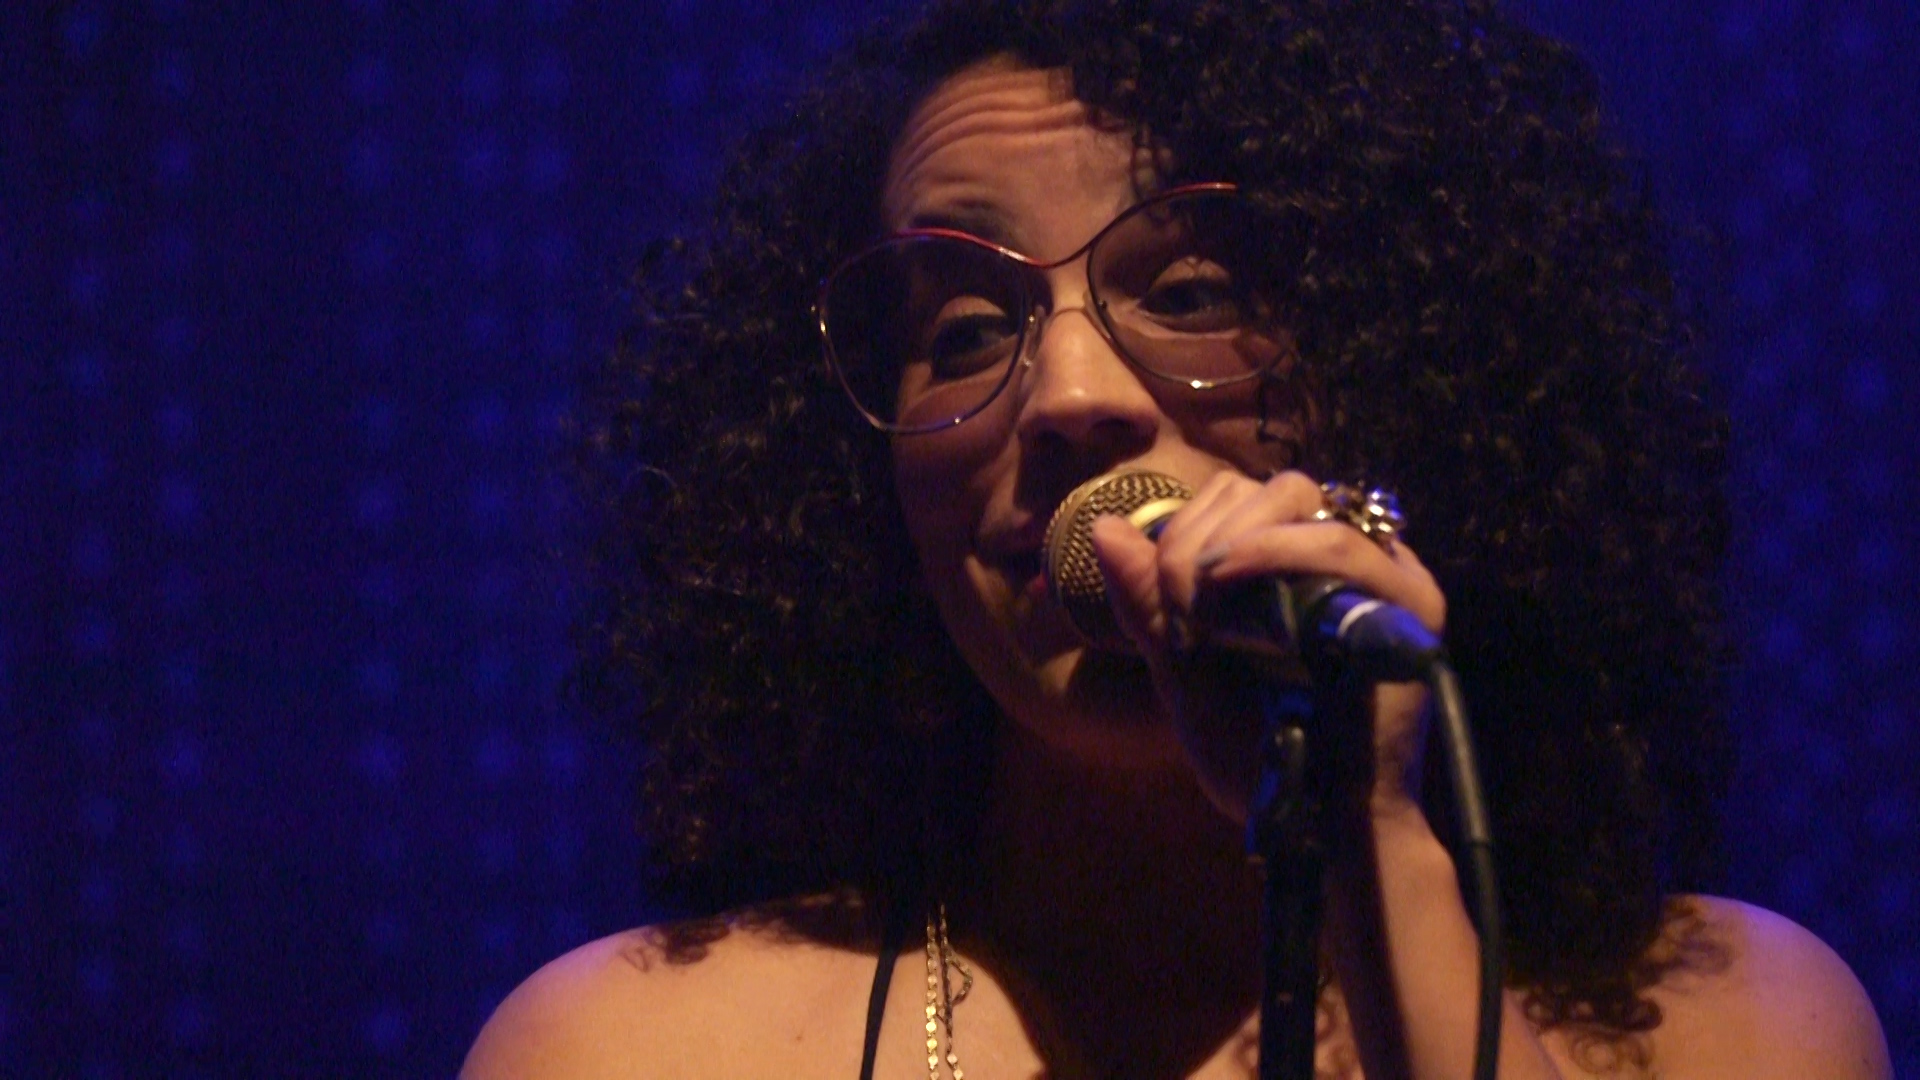 Xenia Rubinos - Xenia Rubinos' complex music is infused with simple messages about big ideas.Season 1, Episode 11